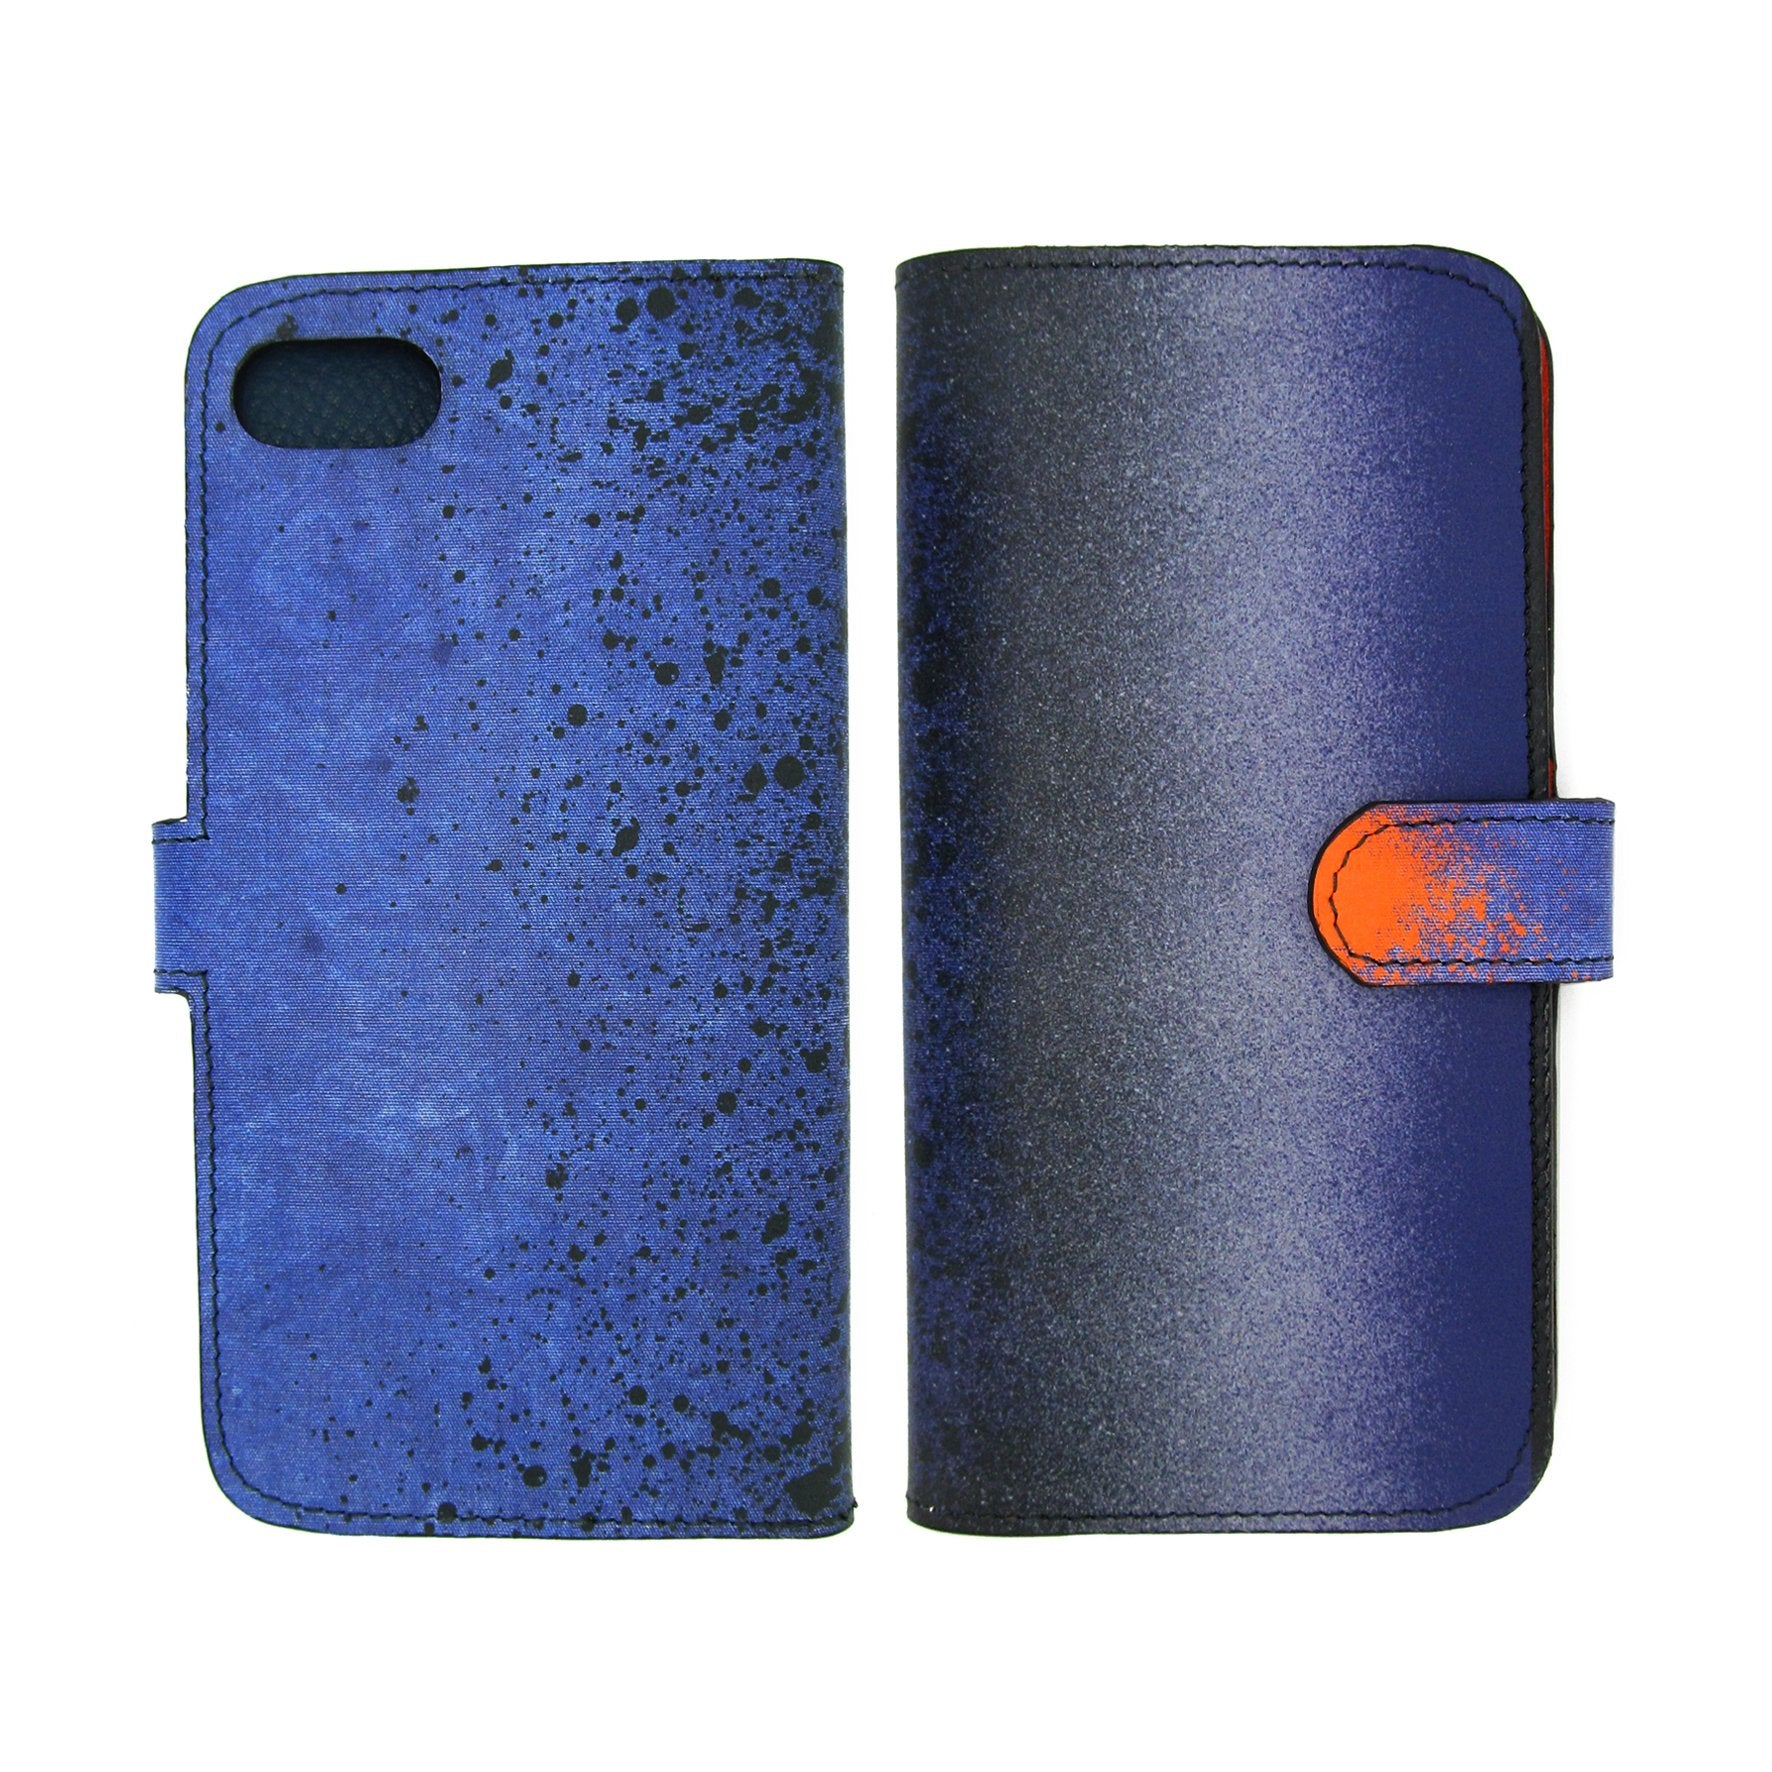 Leather phone case - Blue leather iPhone X Case - iphone xr Case – iphone xs Case – iphone x cover - modern printed designer Smartphone case - Blue phone case - Samsung cases -